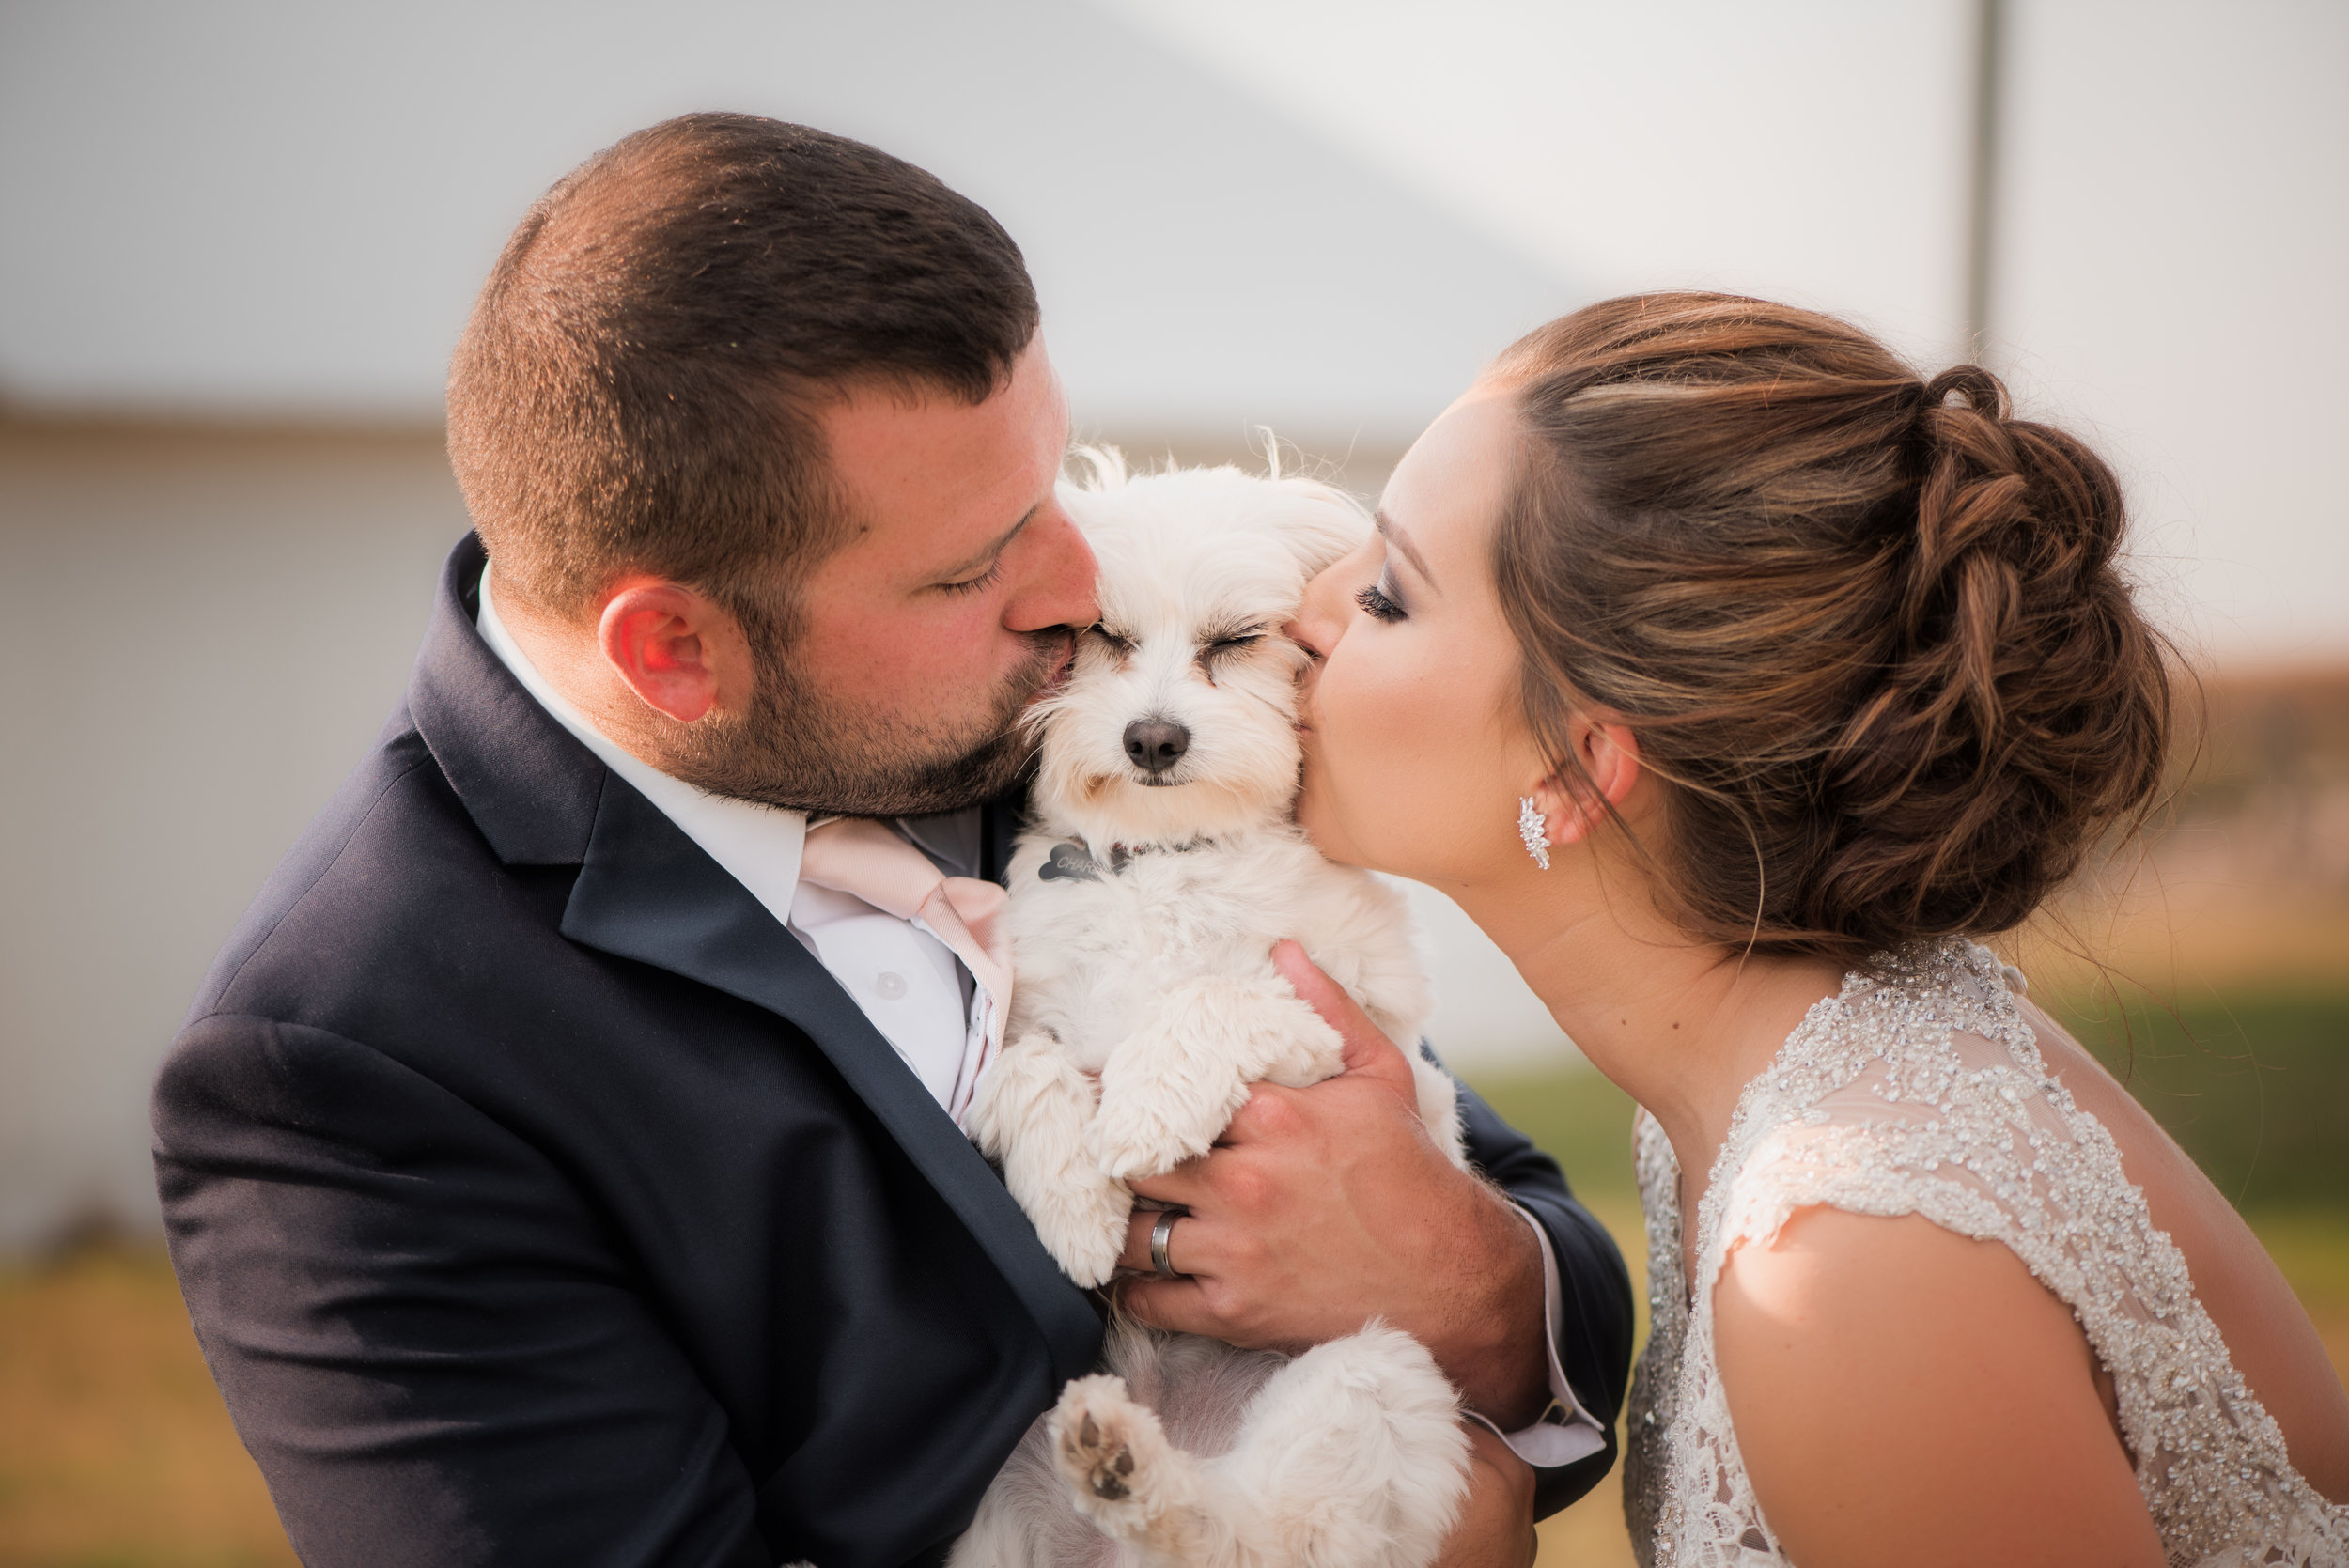 bride-groom-kiss-bichon-frise-wedding-photo.jpg